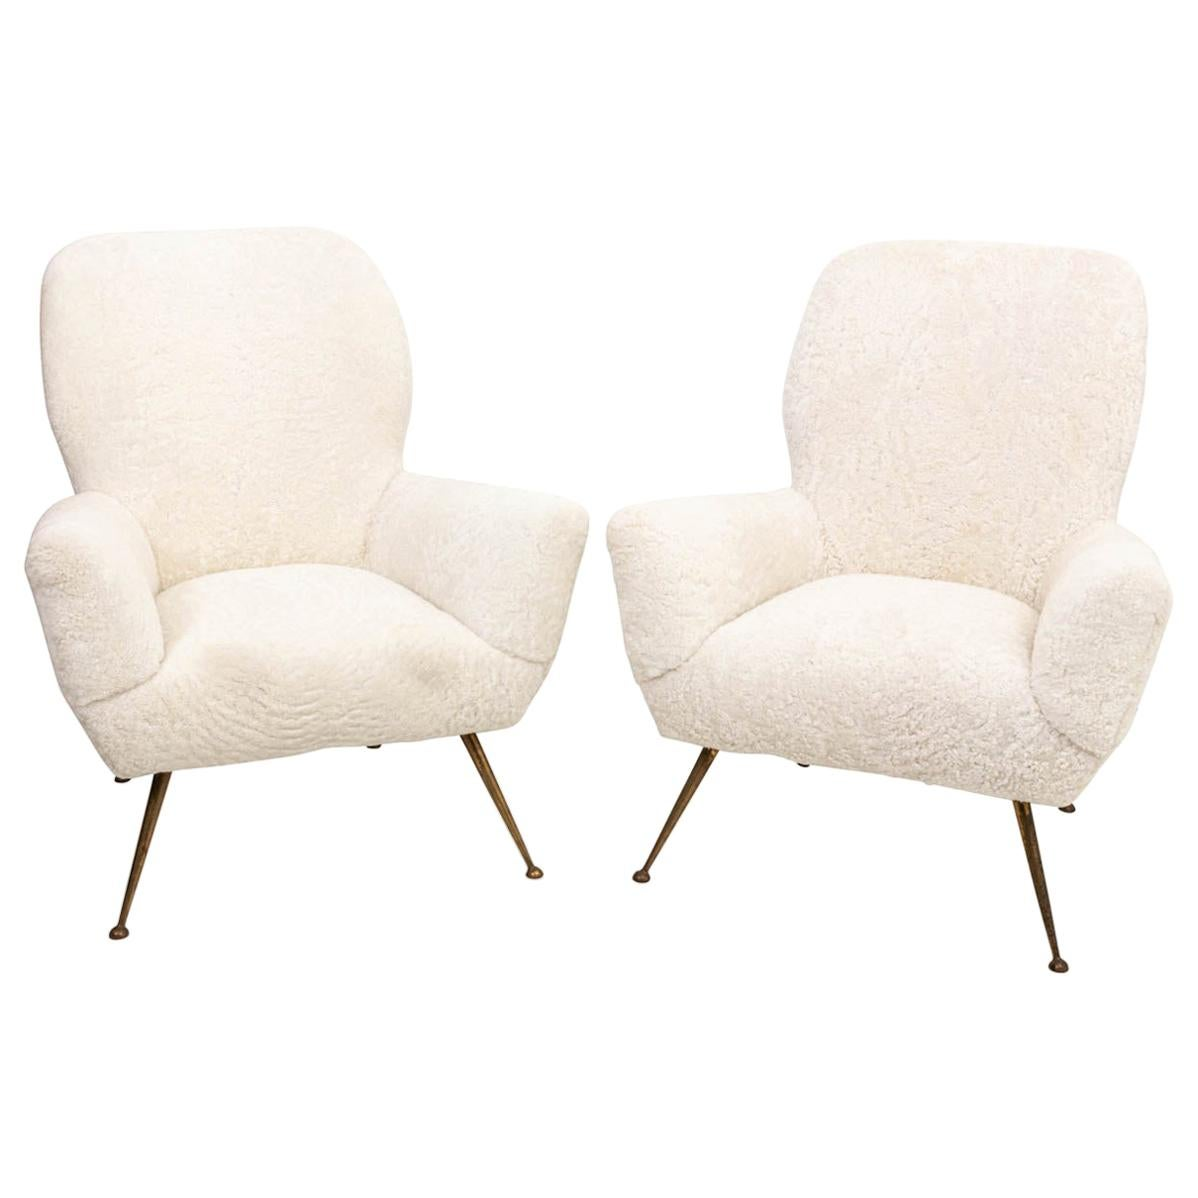 Pair of Italian Shearling Chairs